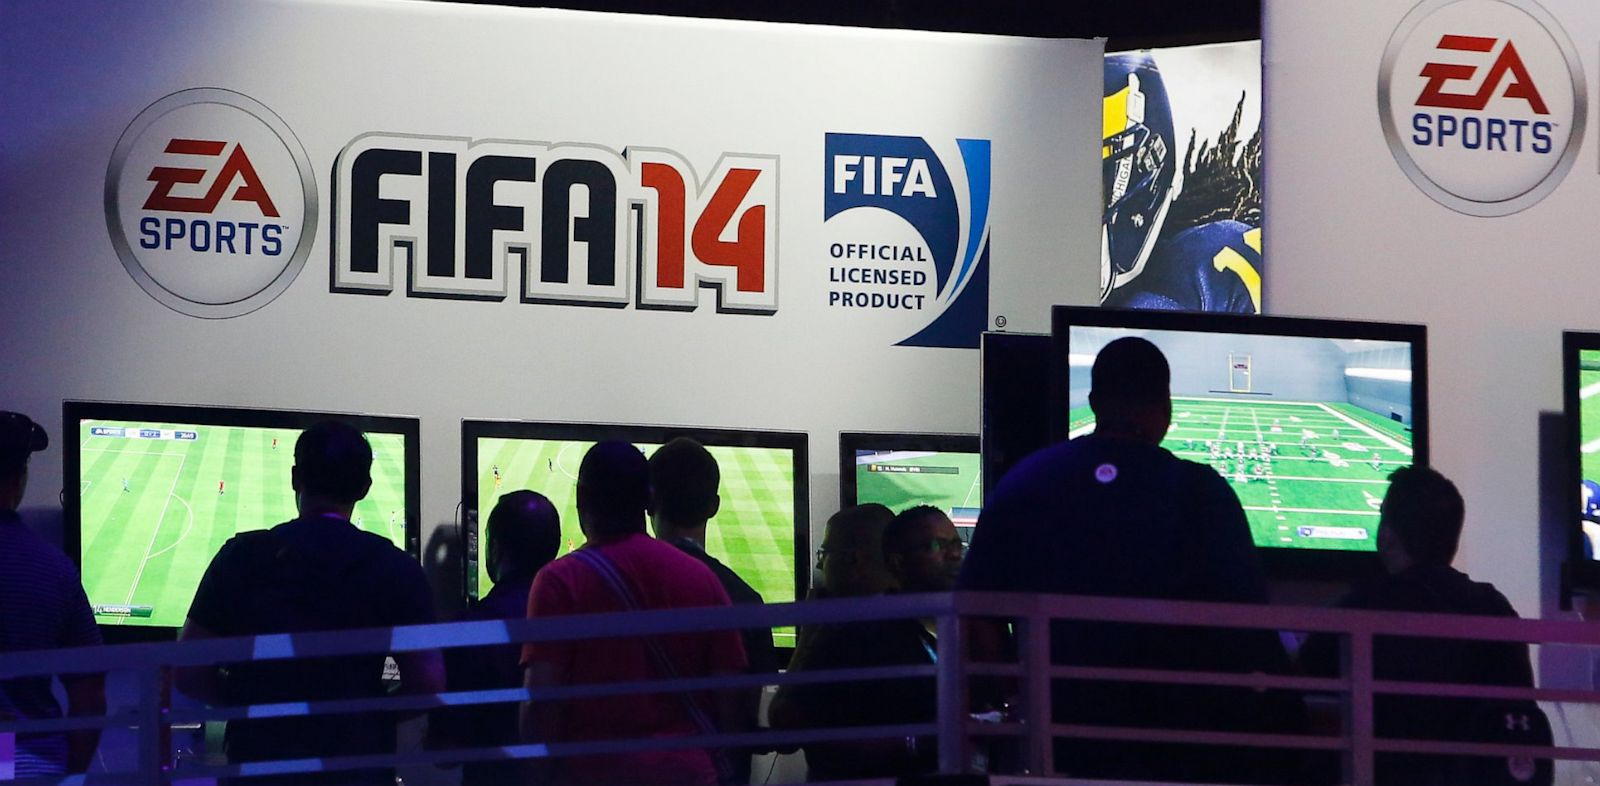 PHOTO: Attendees try out Electronic Arts Inc.s FIFA 14 and Madden NFL 25 video games at the companys booth during the E3 Electronic Entertainment Expo in Los Angeles, California, U.S., on Wednesday, June 12, 2013.